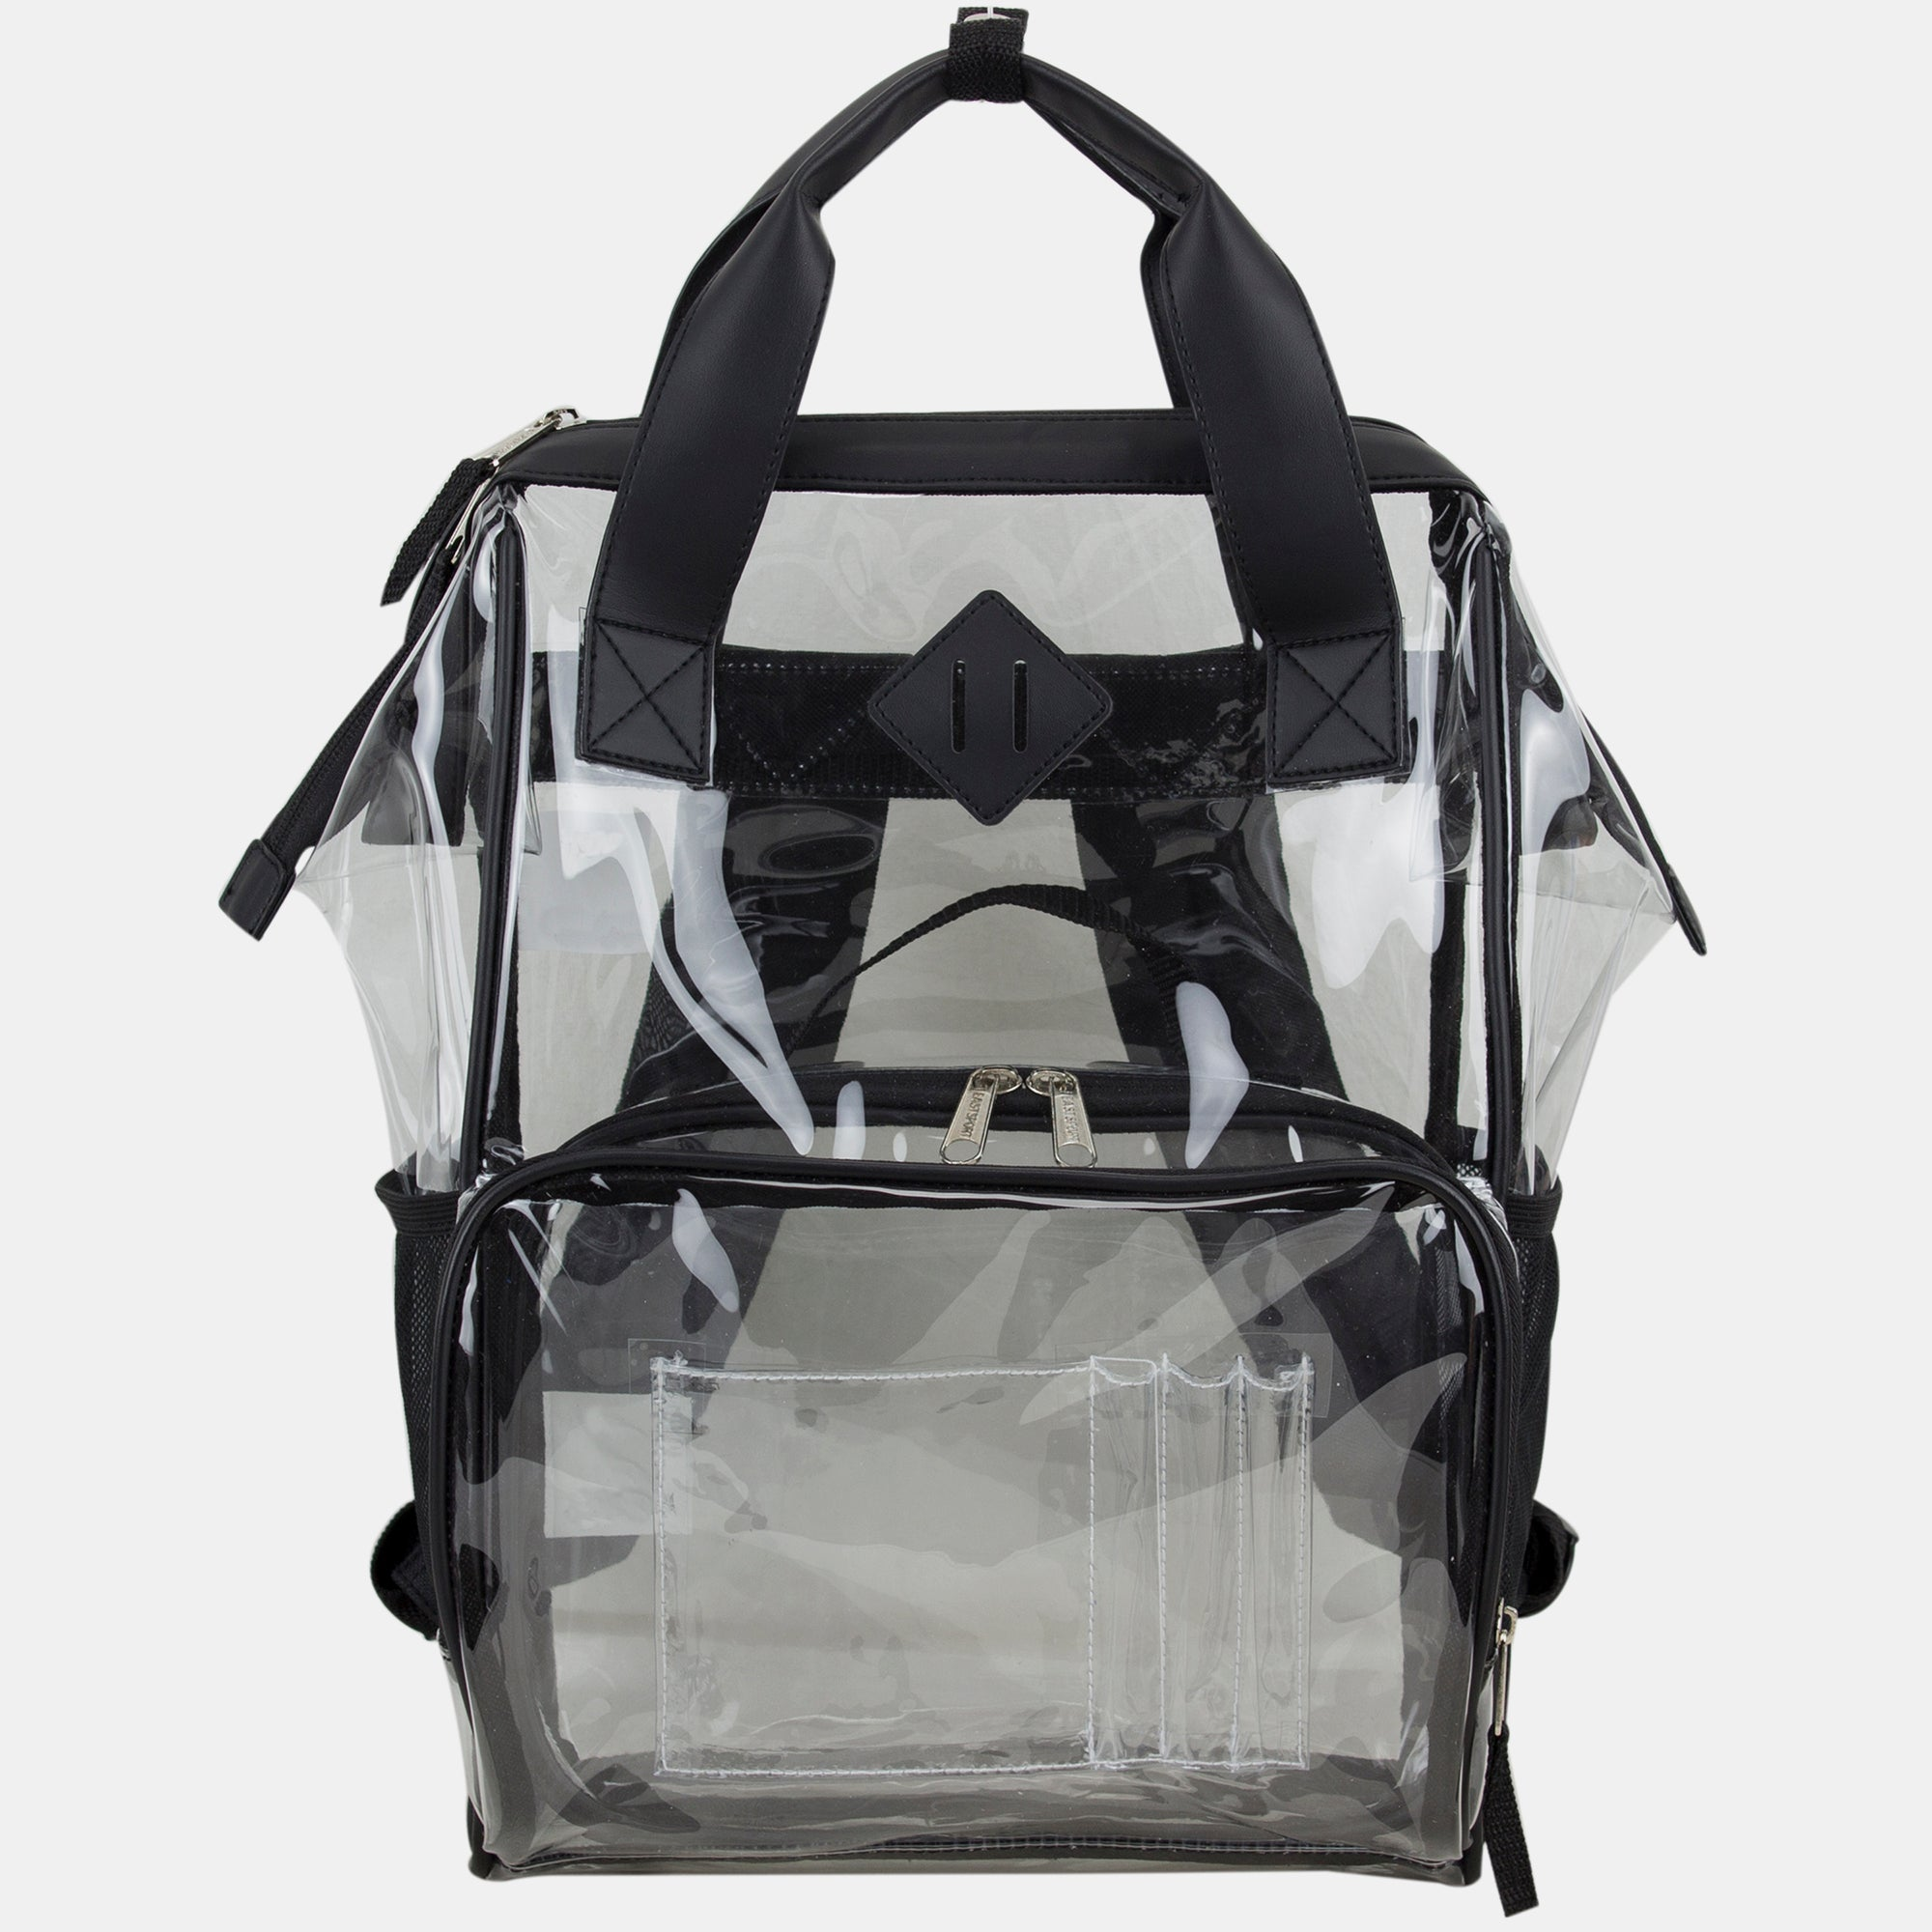 Eastsport Double Handle Clear Backpack with Adjustable Padded Straps and Free Clear Pouch, Tote Alternative (Black)